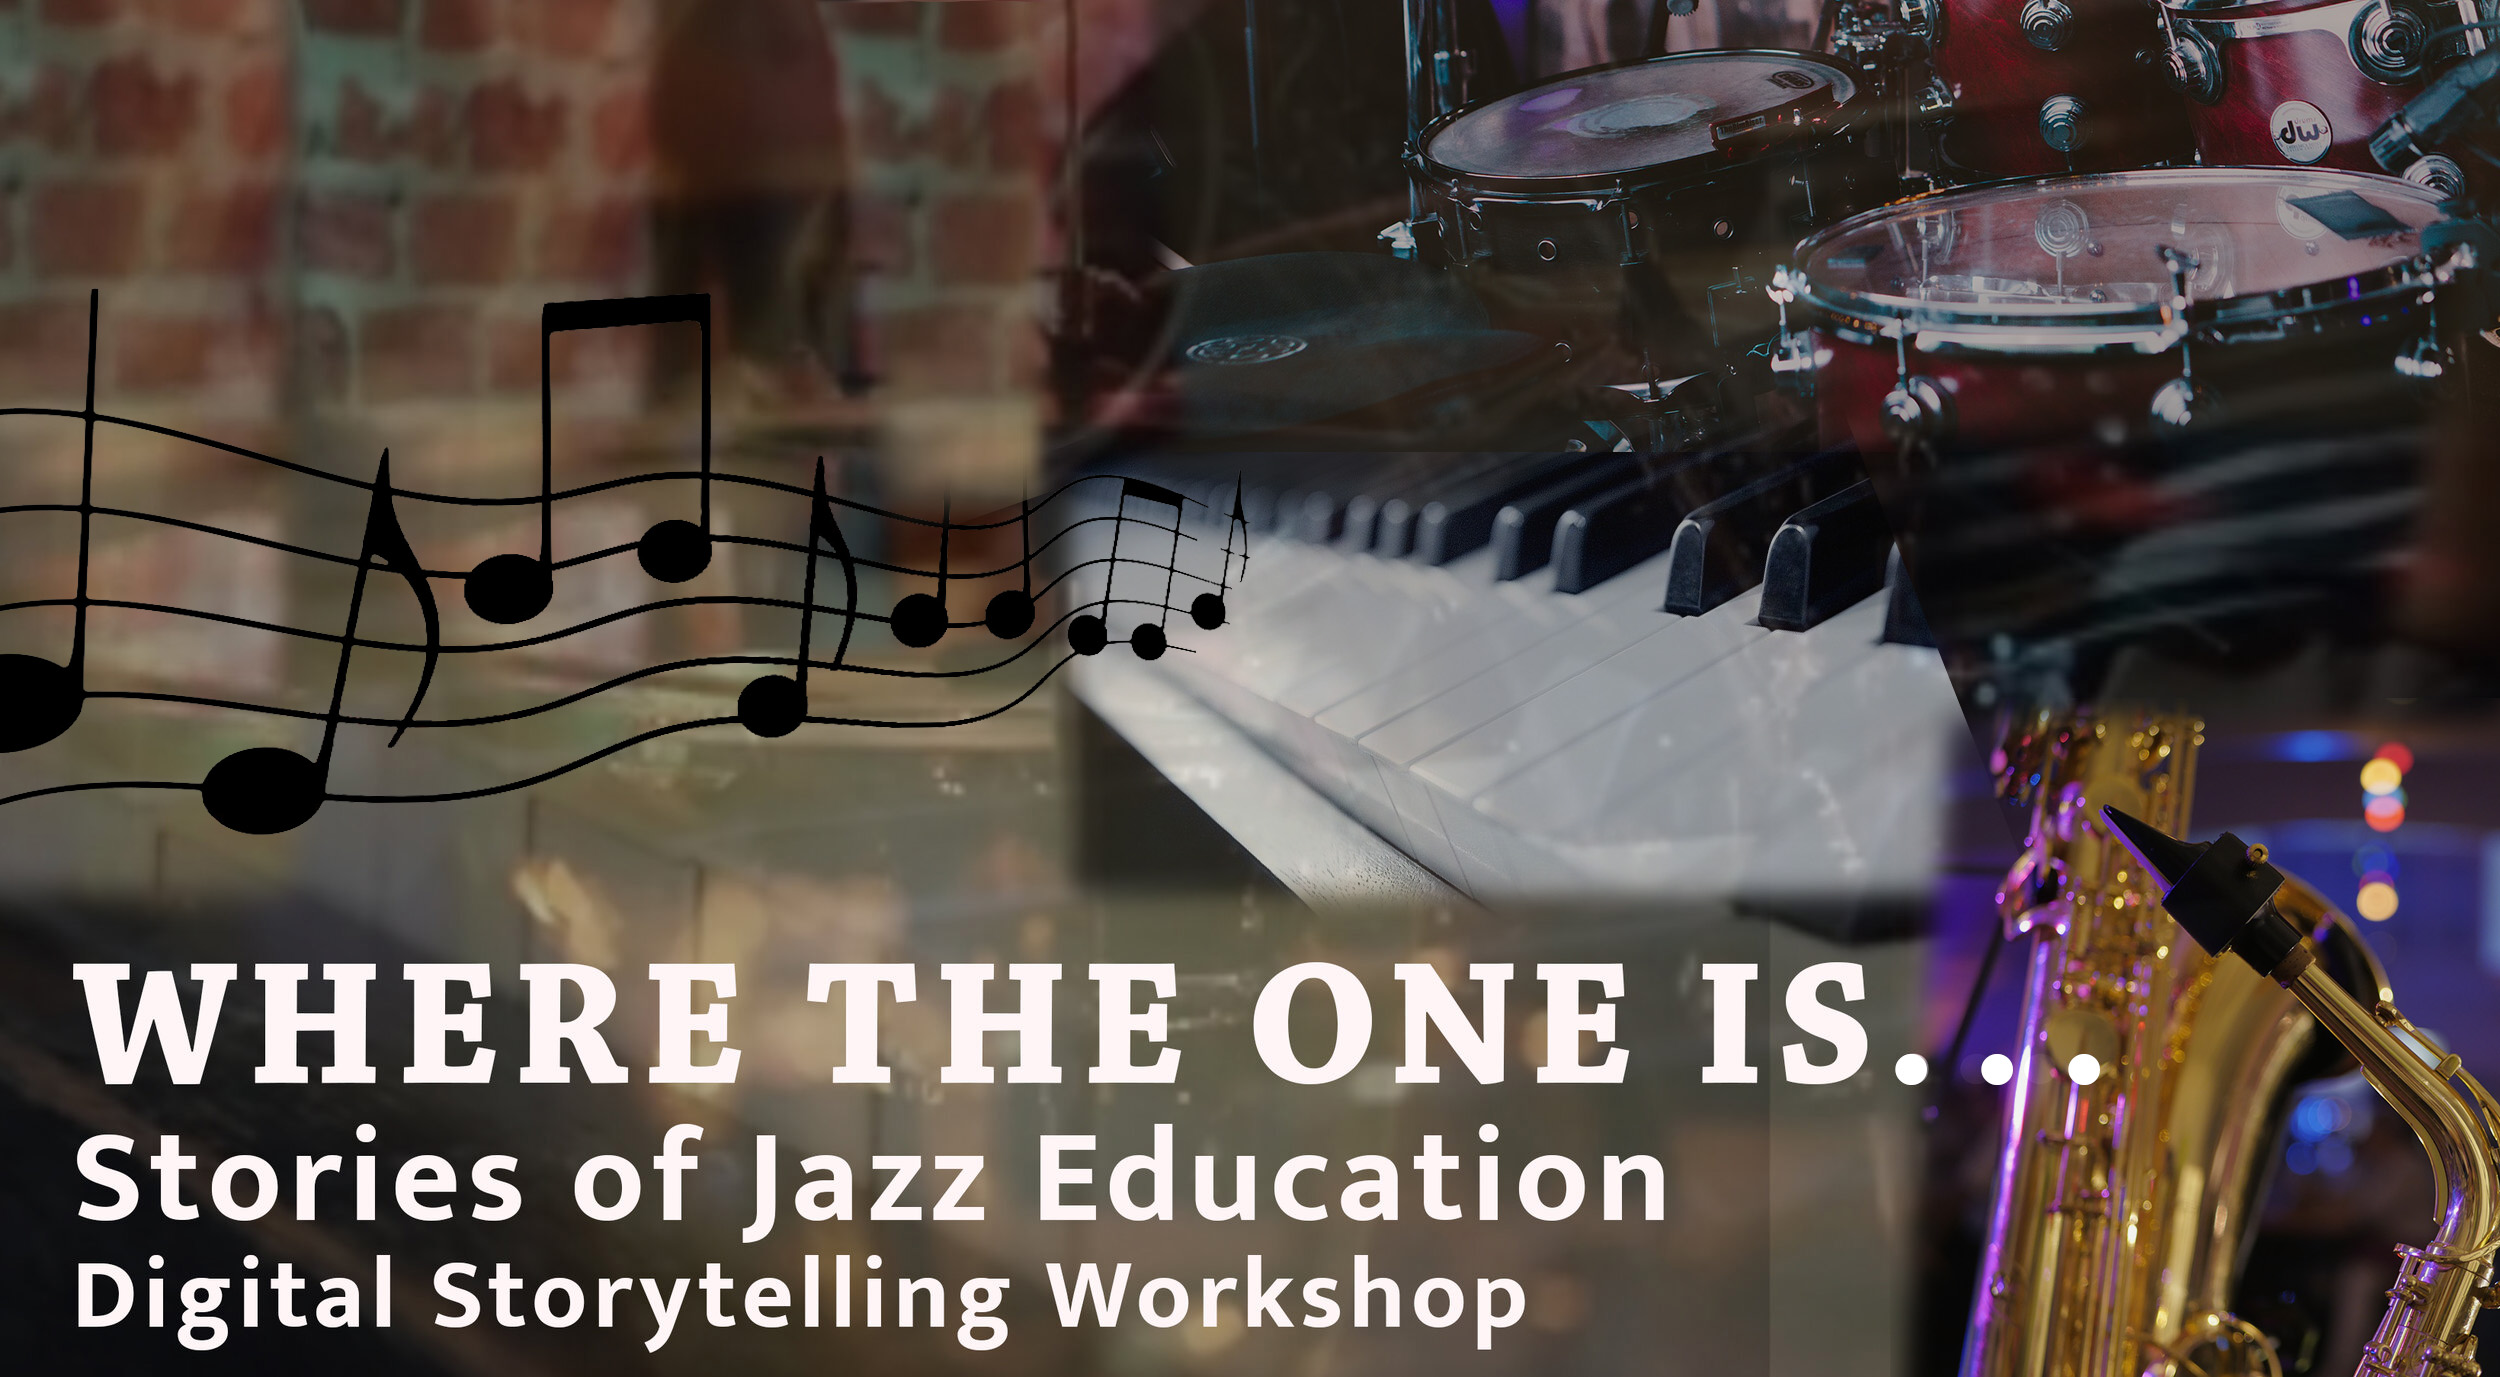 Where The One Is - Digital Storytelling About Jazz